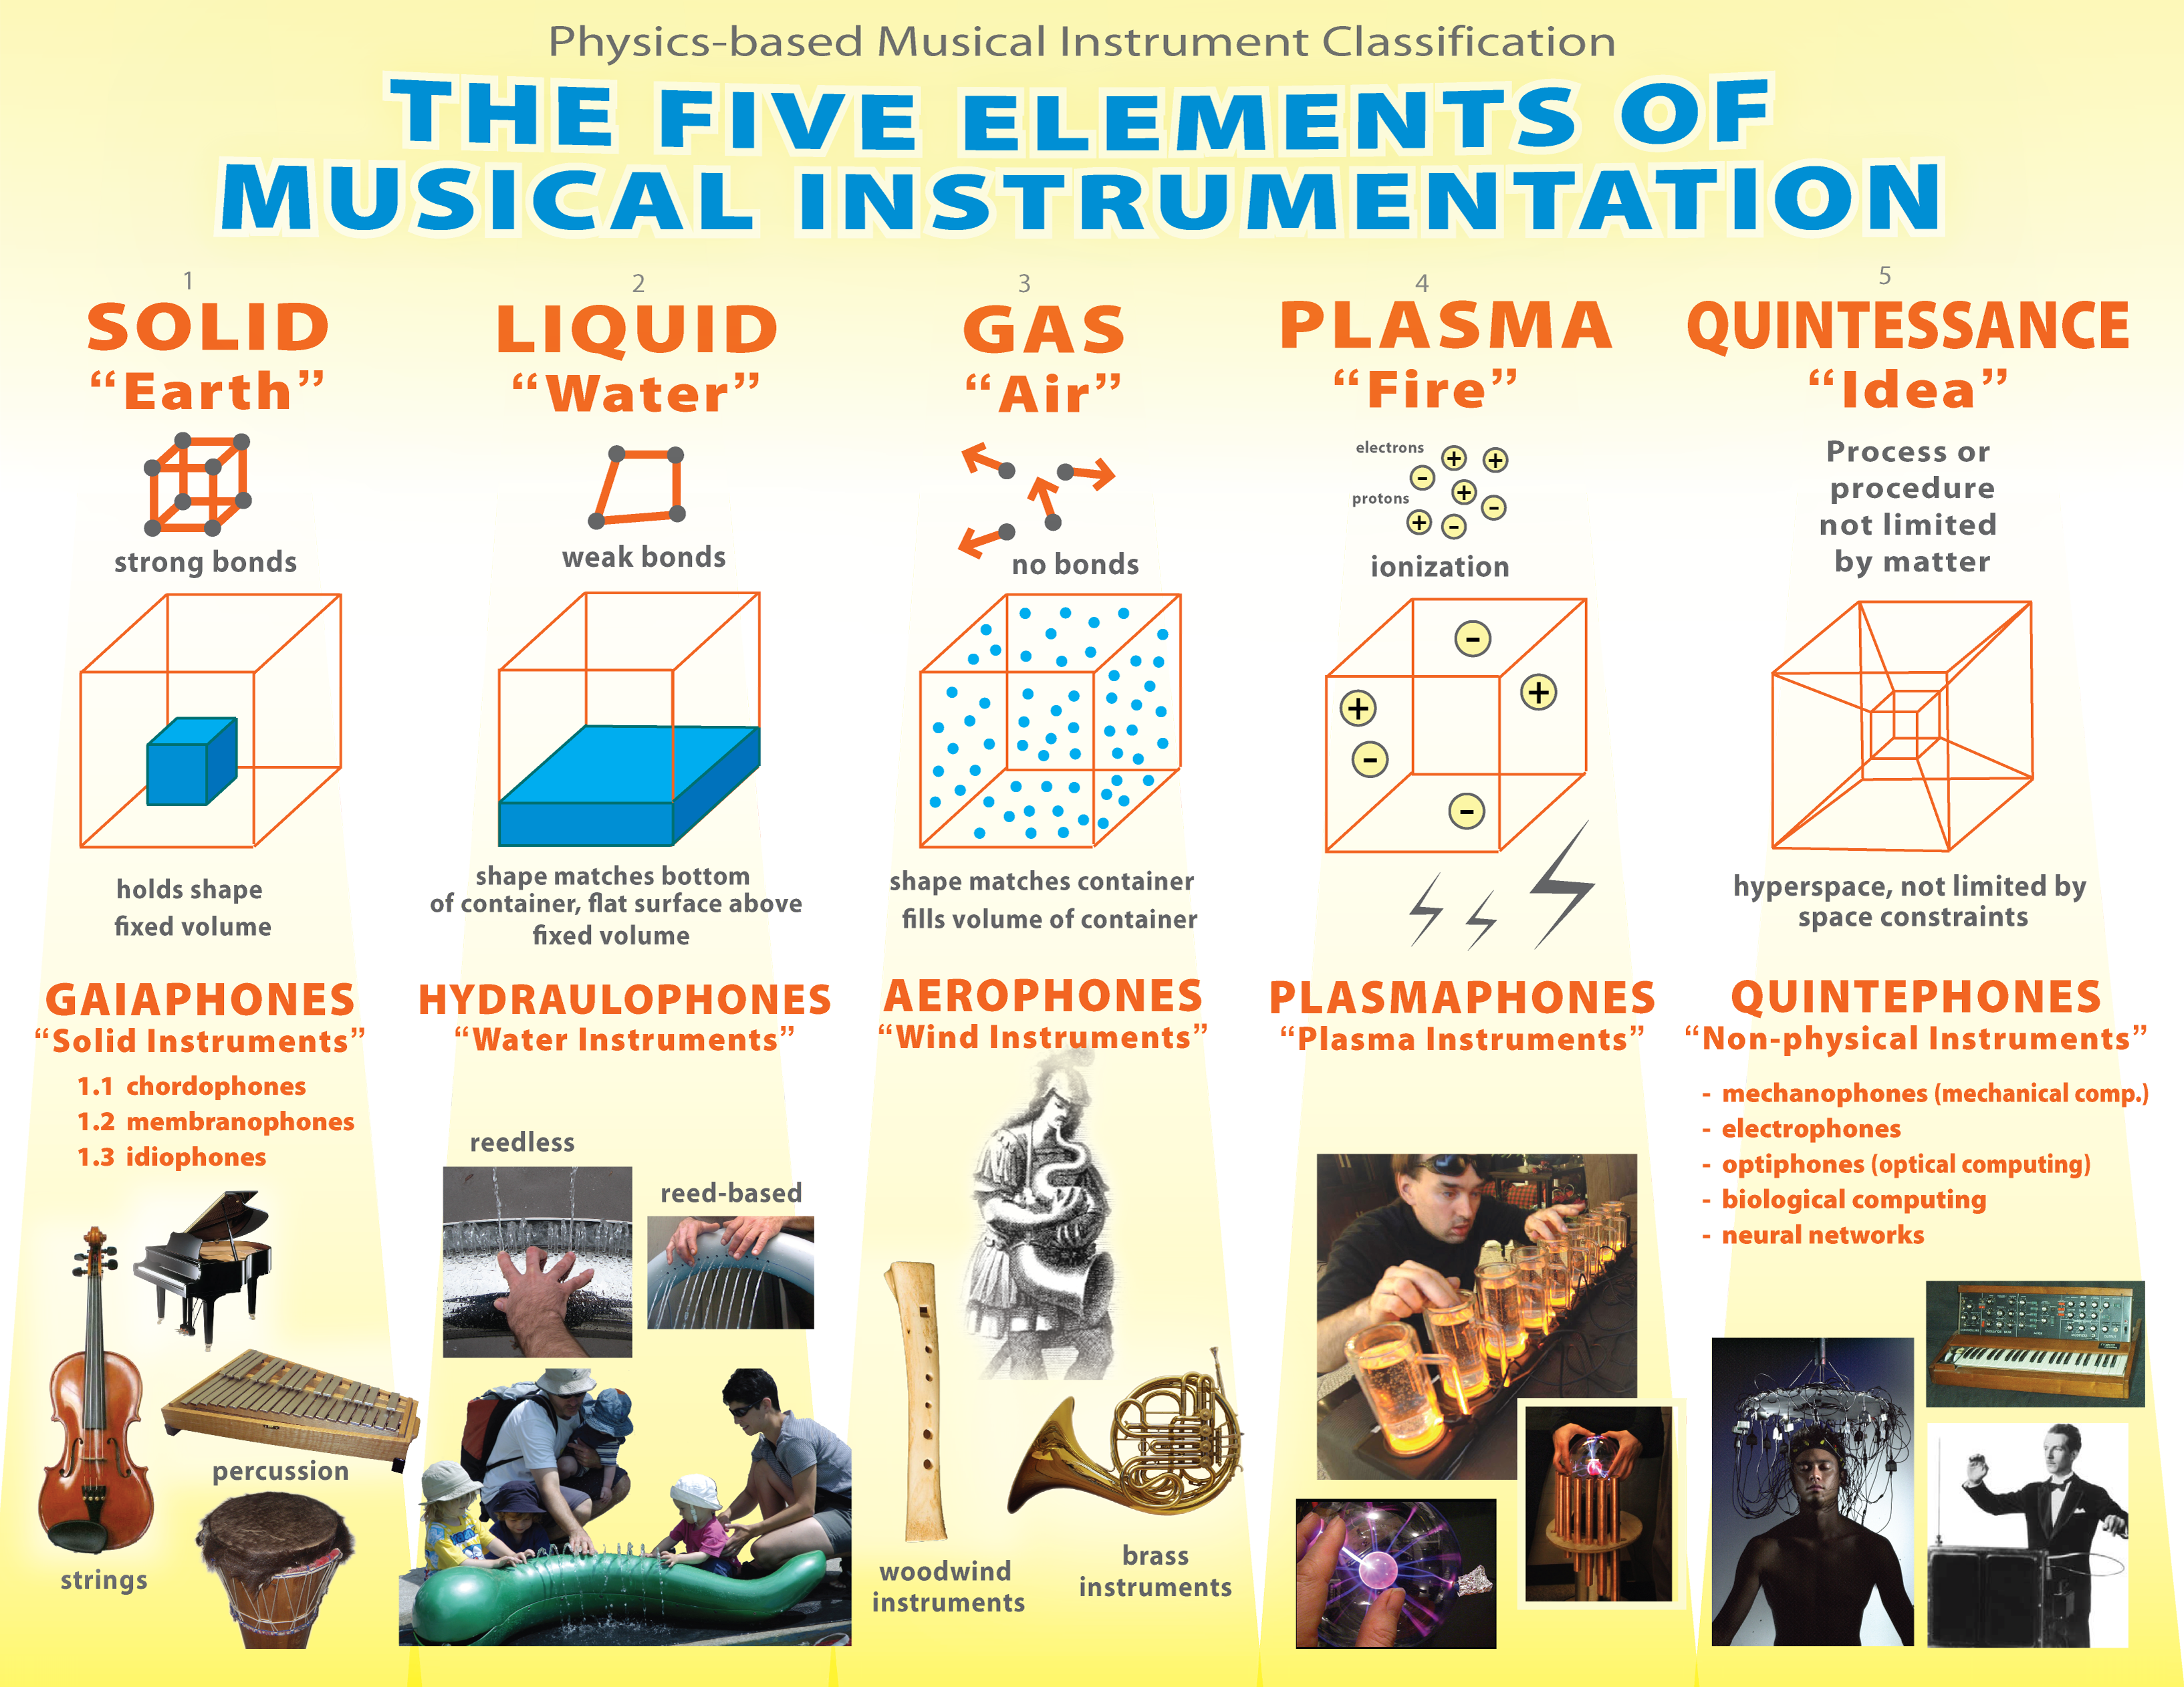 Worksheets 4 Classification Of Musical Instruments physics charts and posters filemusical instrument classification by based organology